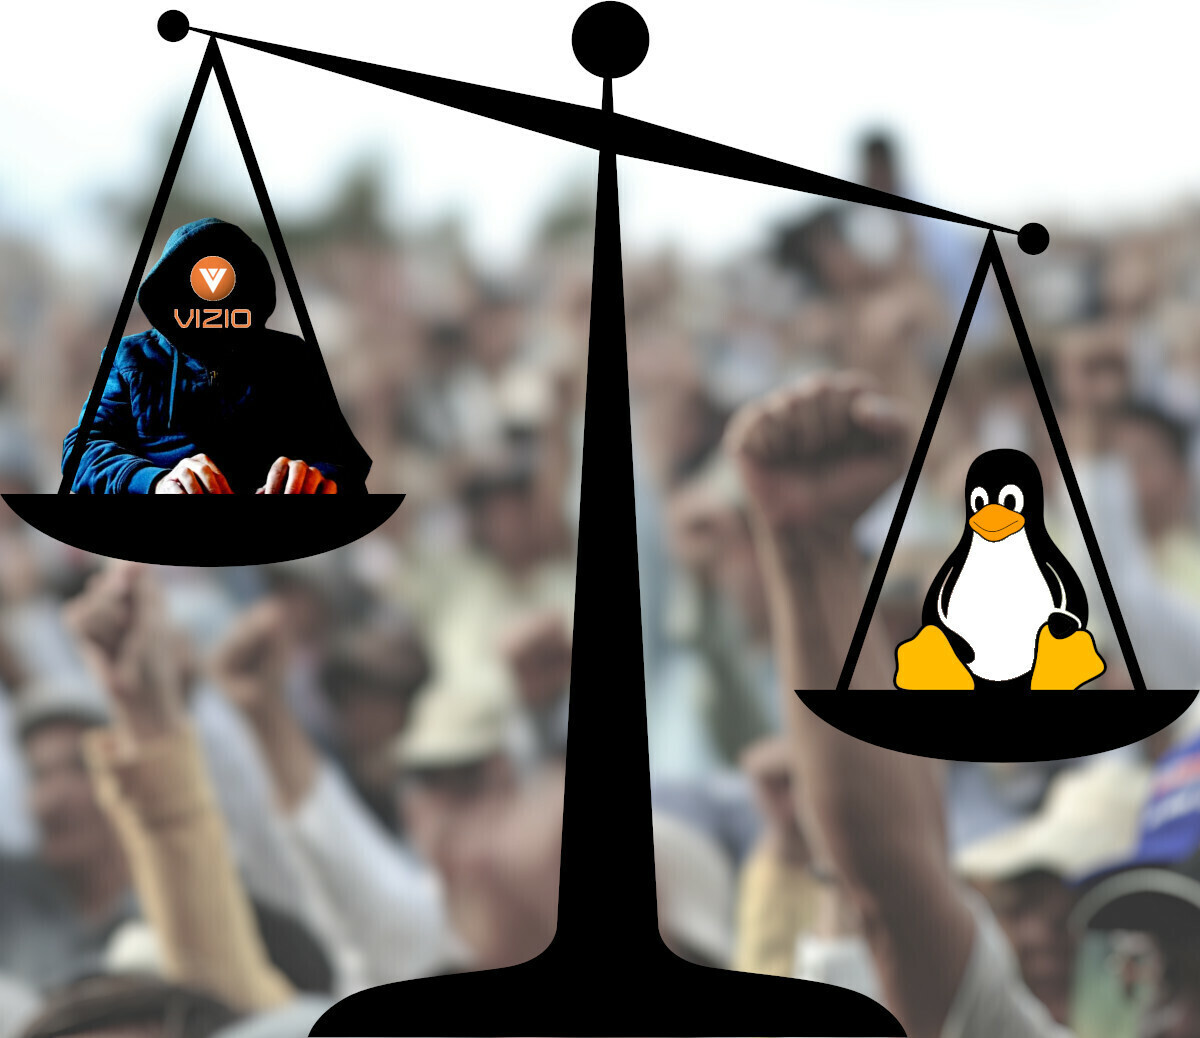 A scales of justice; on the high pan, a hacker in a hoodie, their face replaced by a Vizio logo; on the lower scale, Tux the Penguin; in the background, a washed out and blurred image of a mass demonstration whose participants are raising their fists.<br /><br /><br /><br />Image:<br />Nathan Keirn (modified)<br />https://commons.wikimedia.org/wiki/File:Closeup_of_protesters_at_Ginowan_protests_2009-11-08.jpg<br /><br />CC BY-SA:<br />https://creativecommons.org/licenses/by-sa/2.0/deed.en